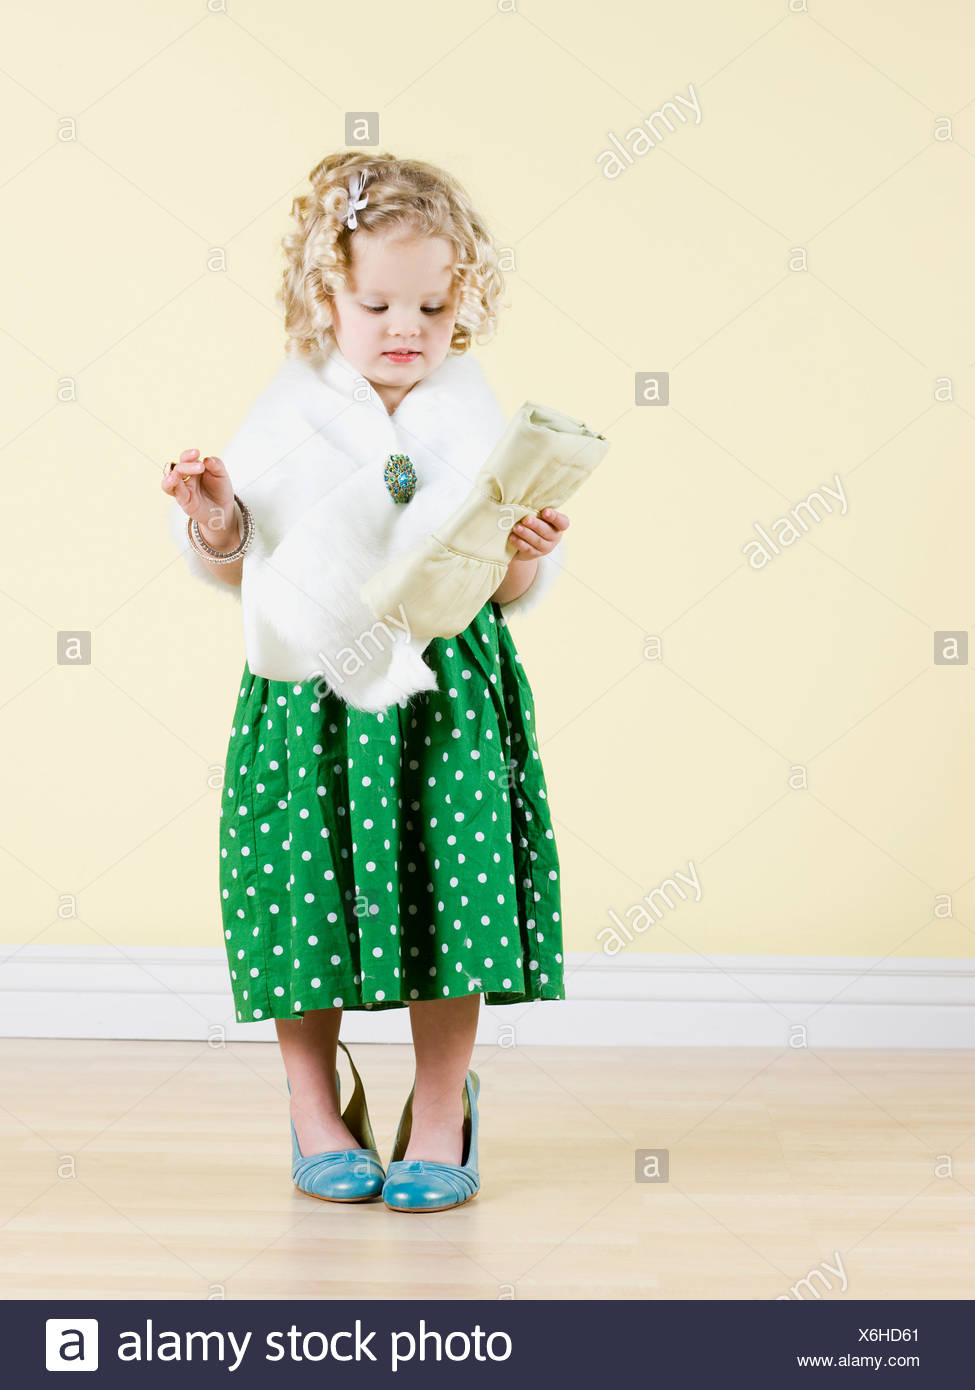 little girl playing dress up - Stock Image